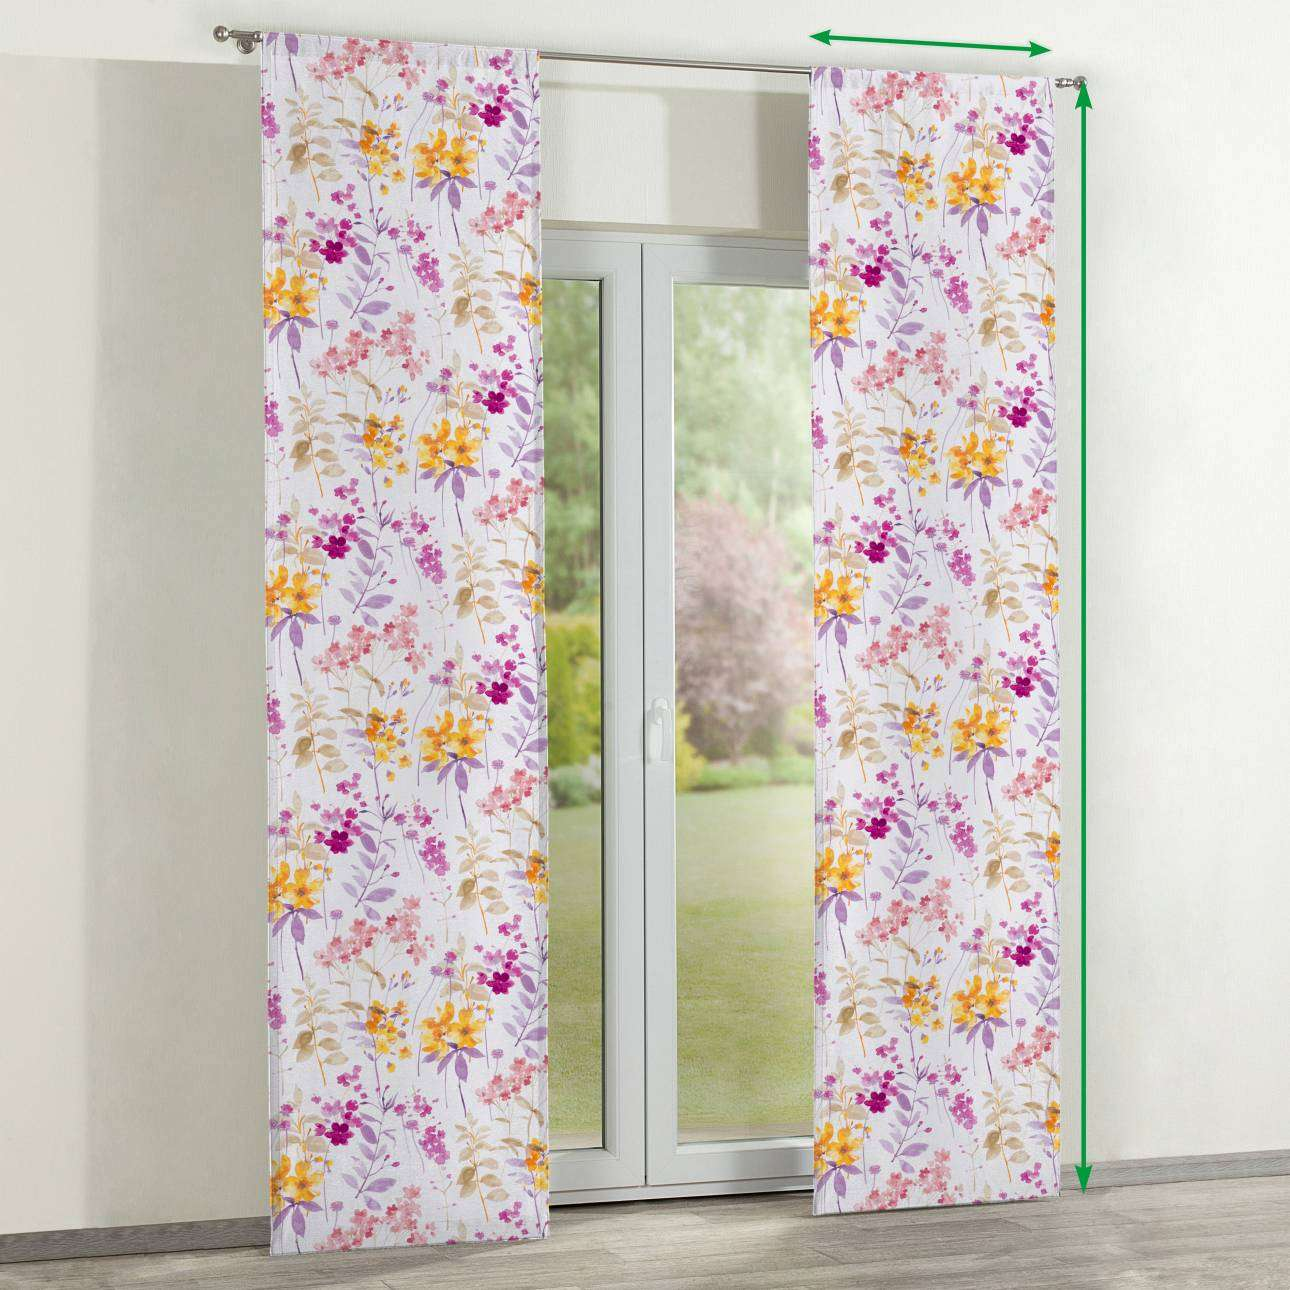 Slot panel curtains – Set of 2 in collection Monet, fabric: 140-04